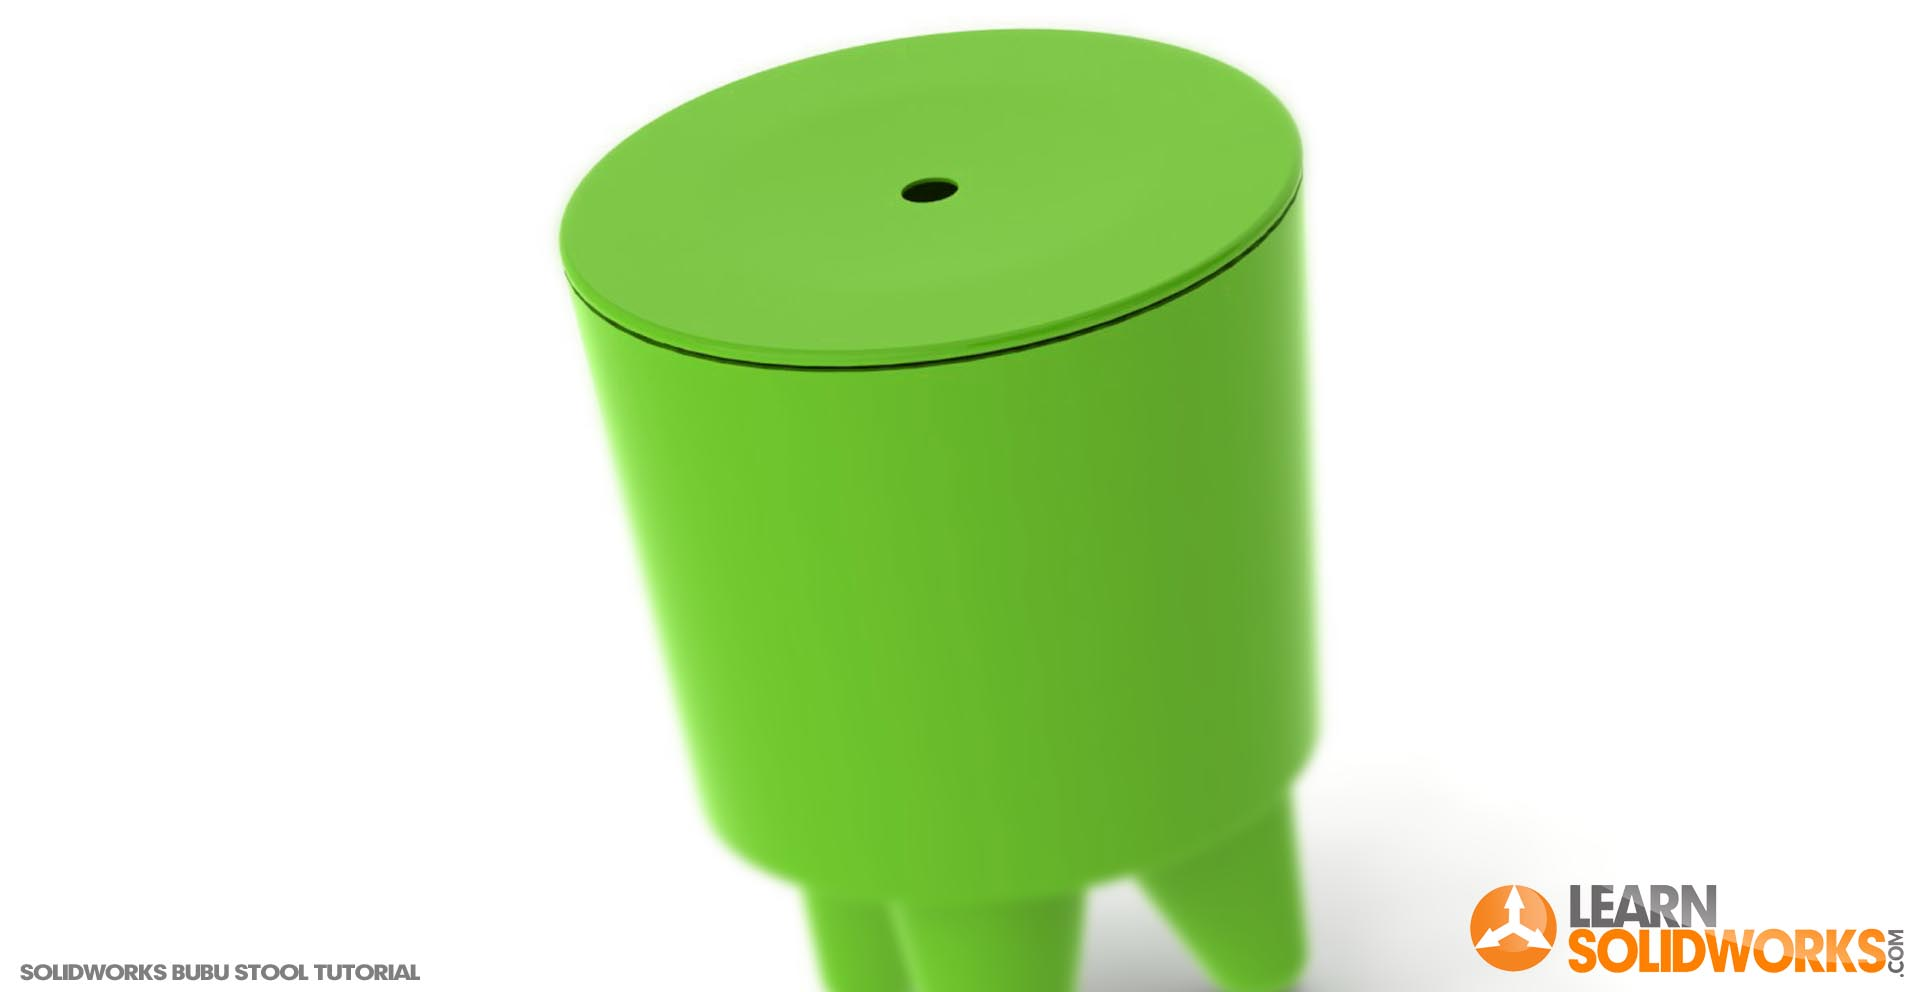 Bubu stool visualisation